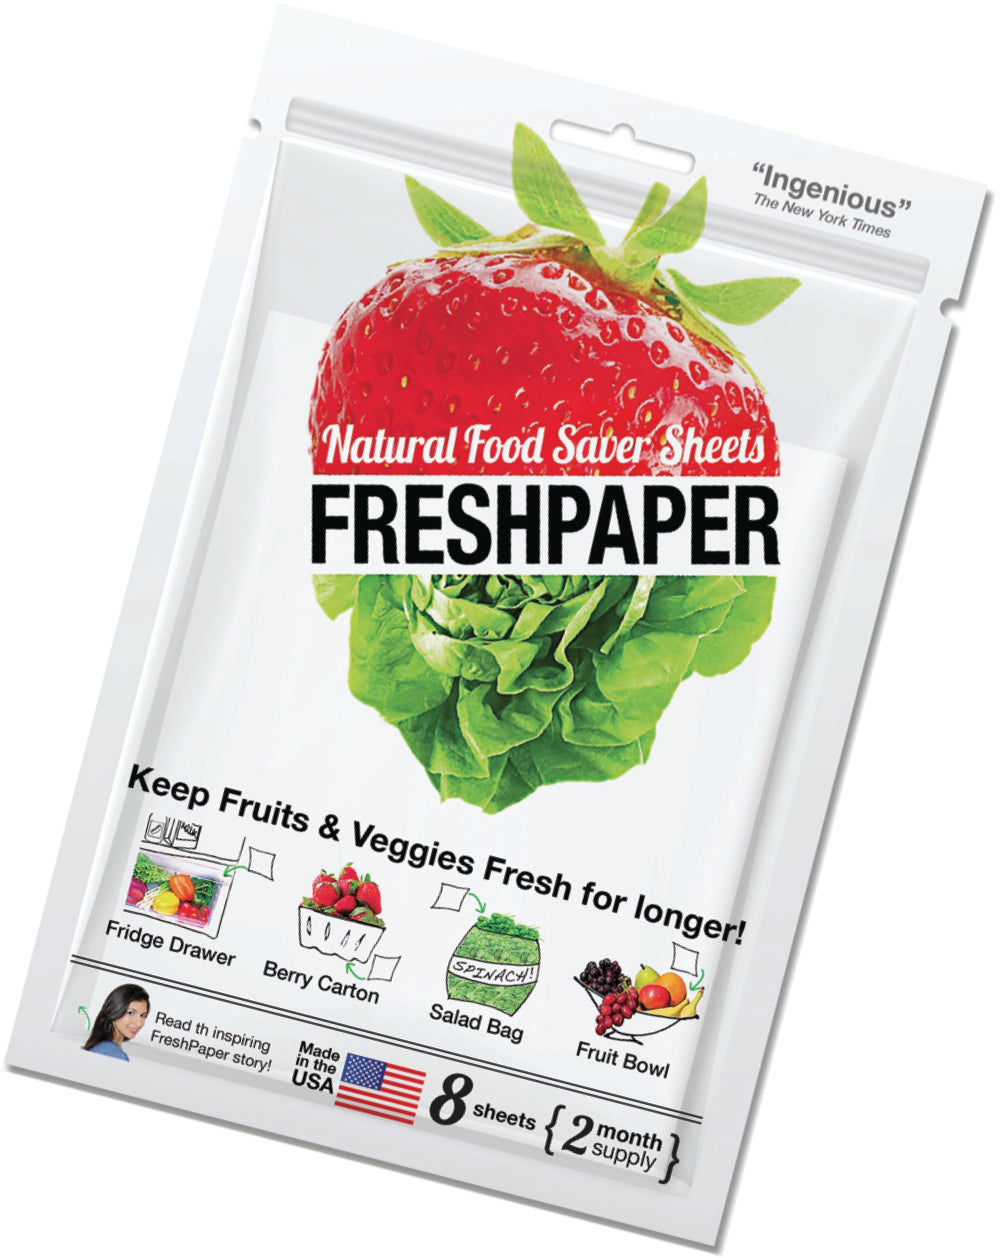 FreshPaper Natural Food Saver Sheets